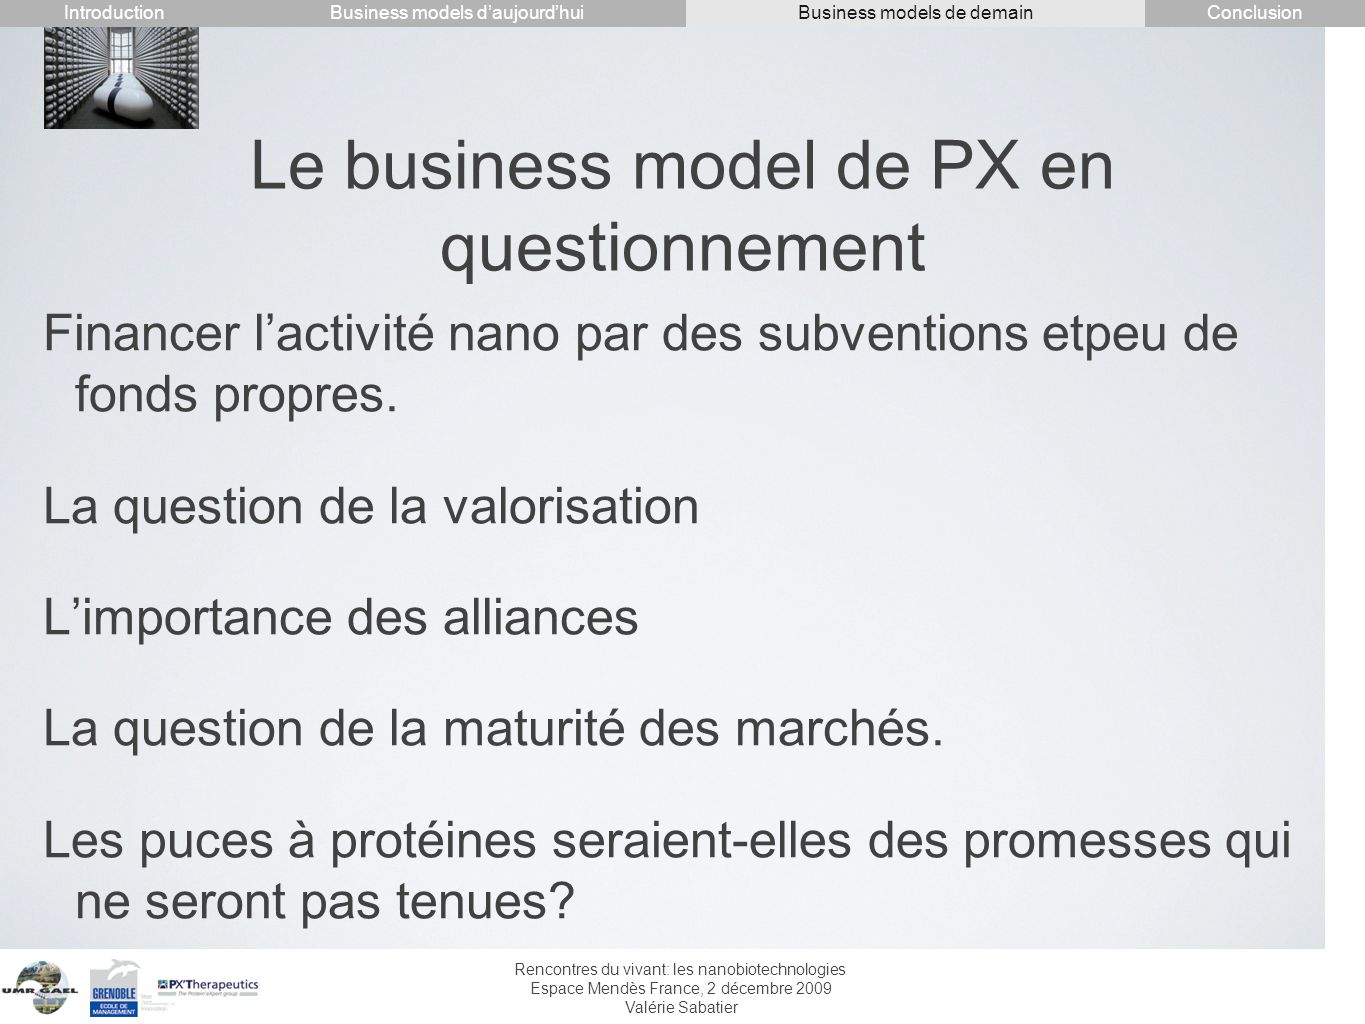 Le business model de PX en questionnement